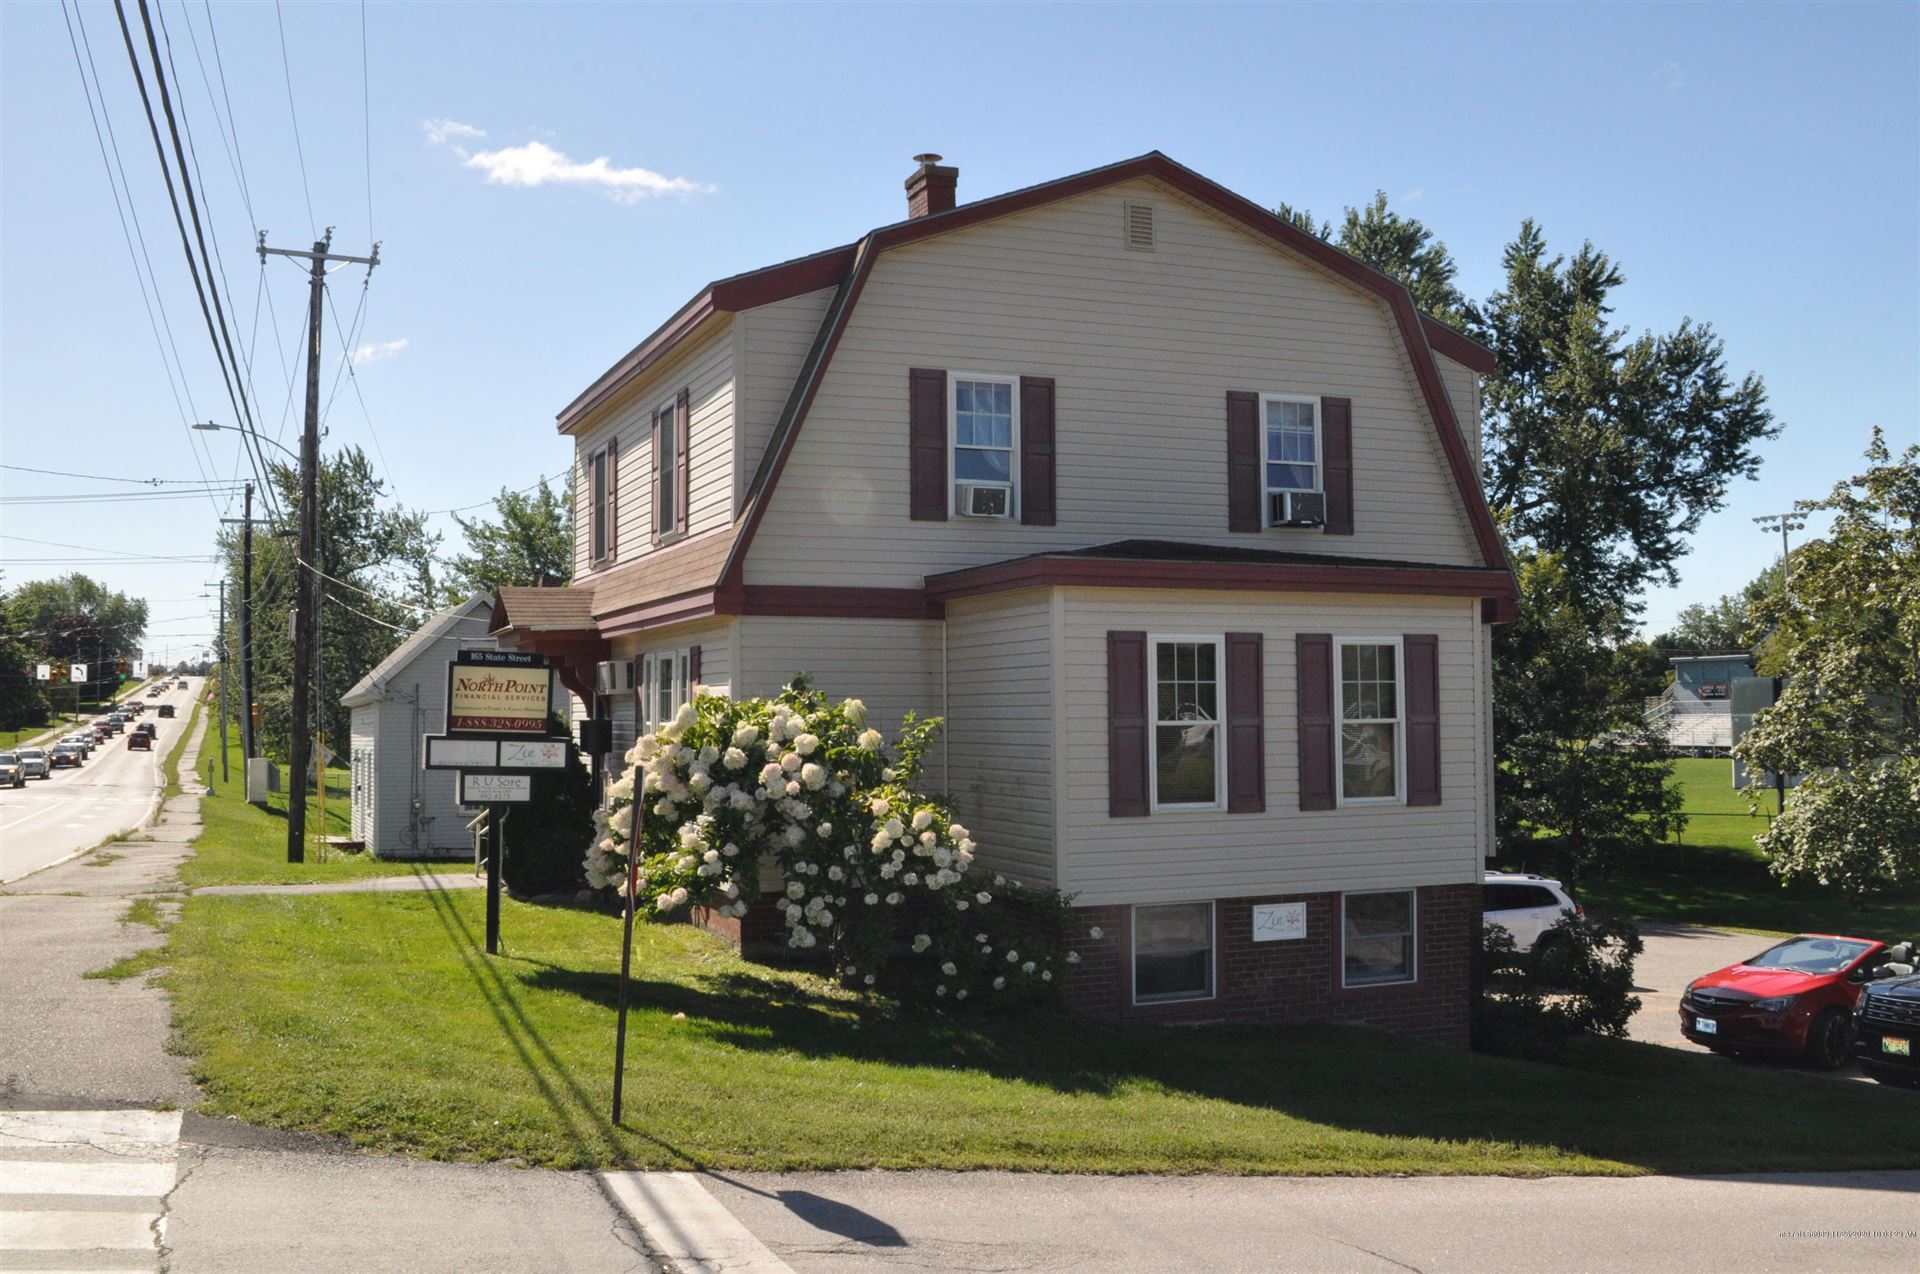 Photo of 165 State Street, Brewer, ME 04412 (MLS # 1476882)